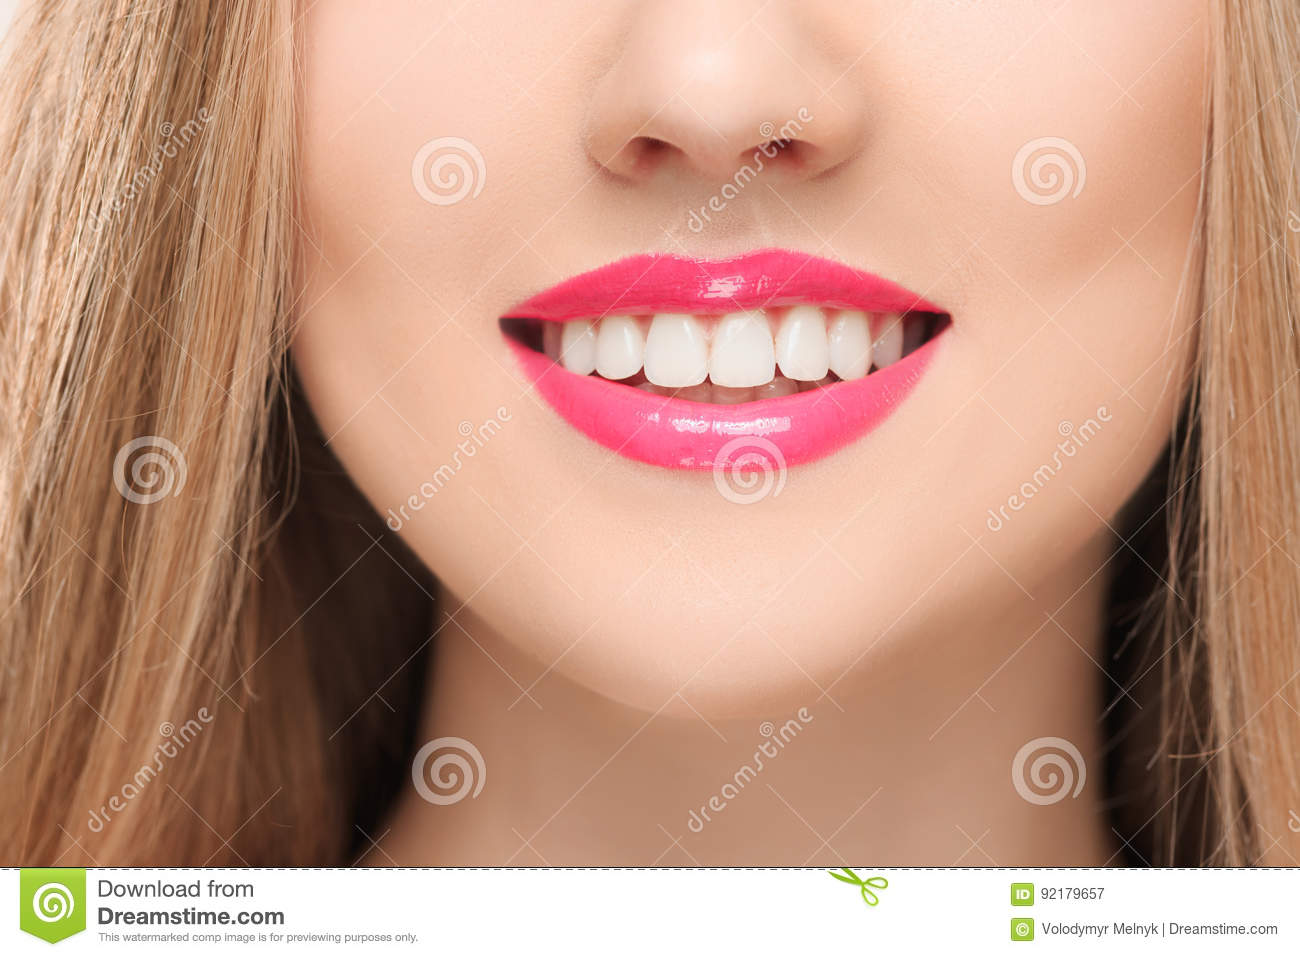 Blonde girl open mouth close up